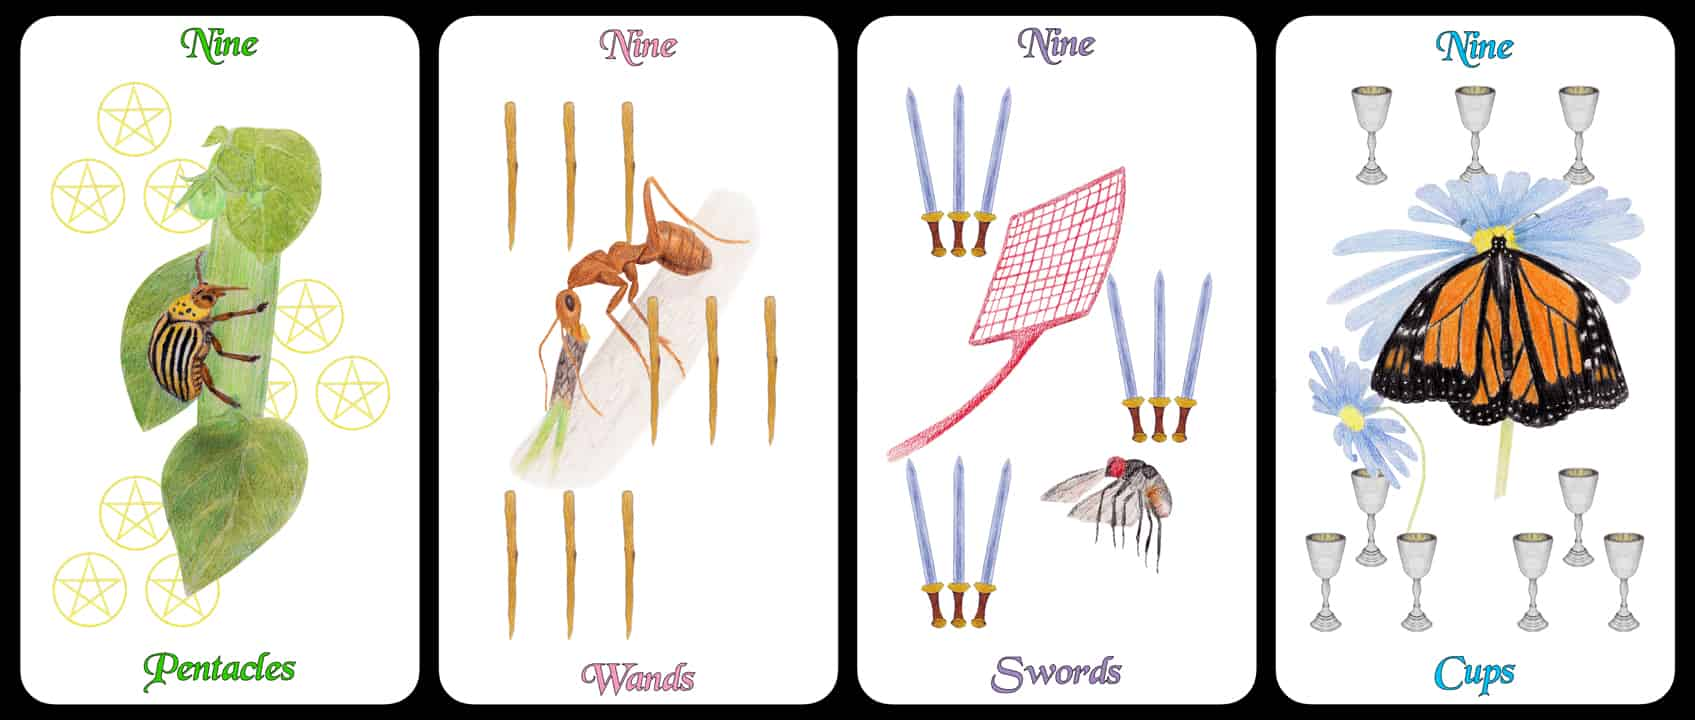 The Nines - The Arthropoda Tarot Deck by Linda Ursin